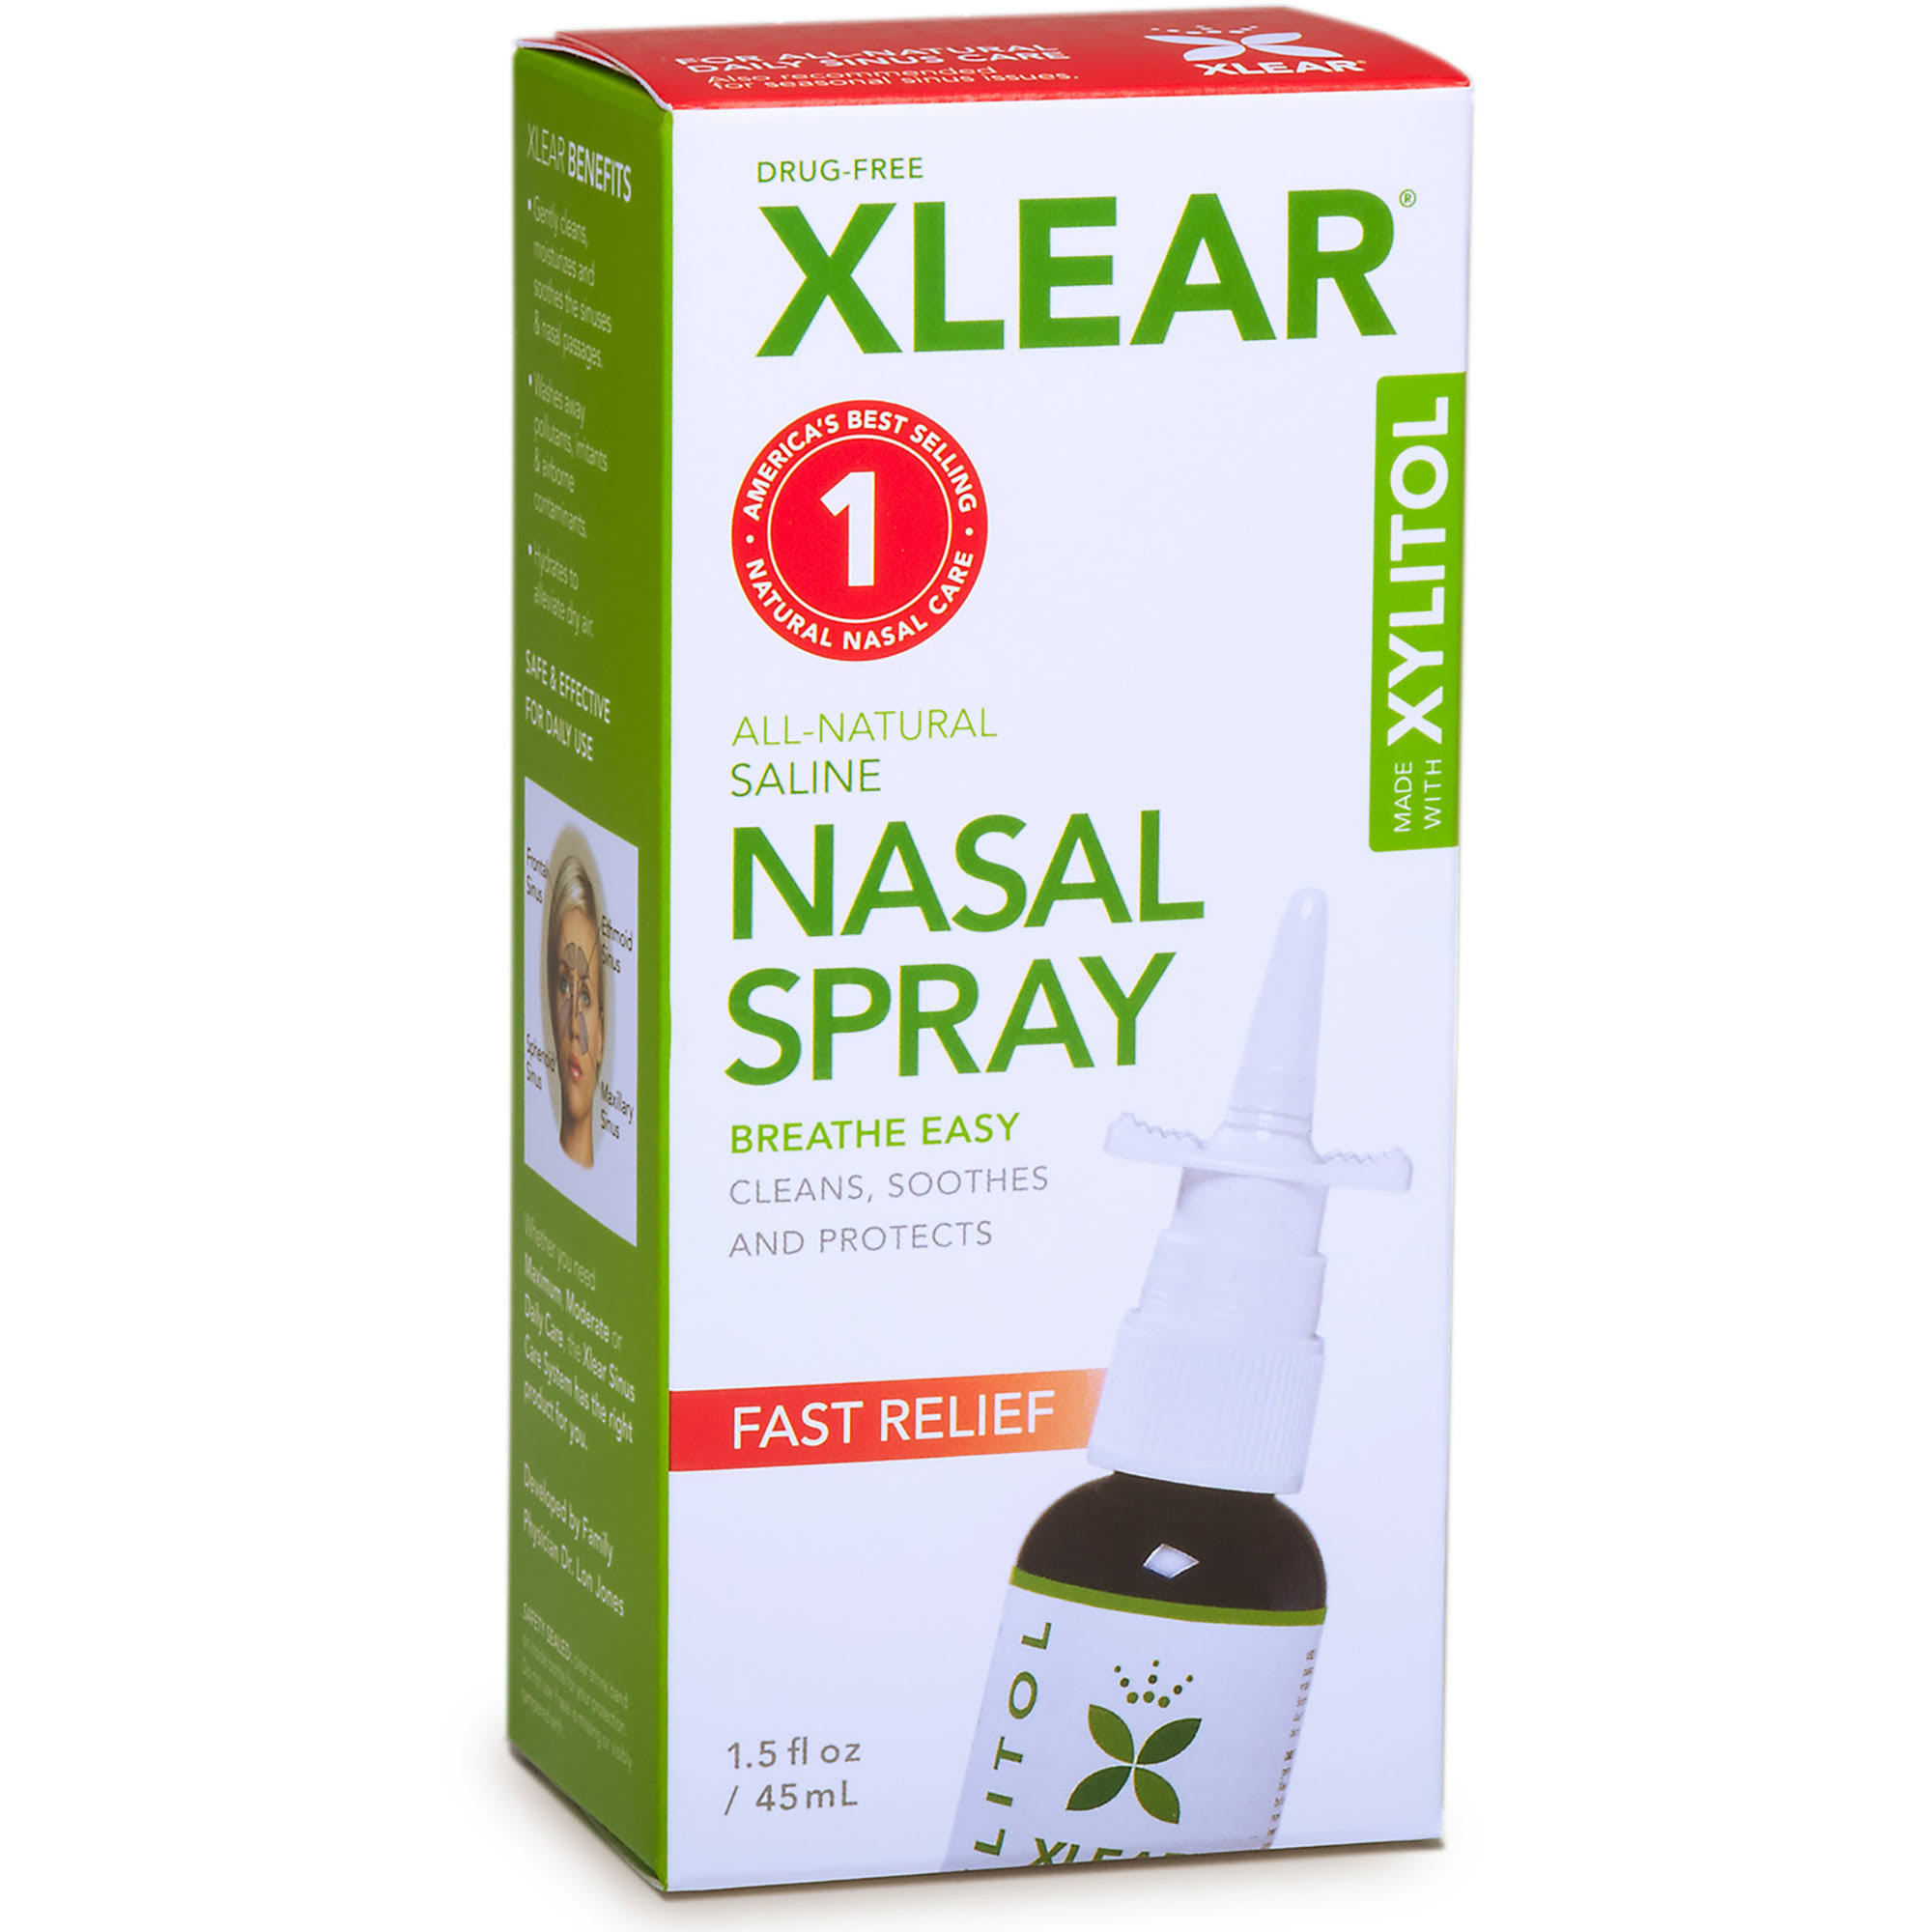 Xlear Nasal Spray with Xylitol, Natural Saline - 1.5 fl oz dropper